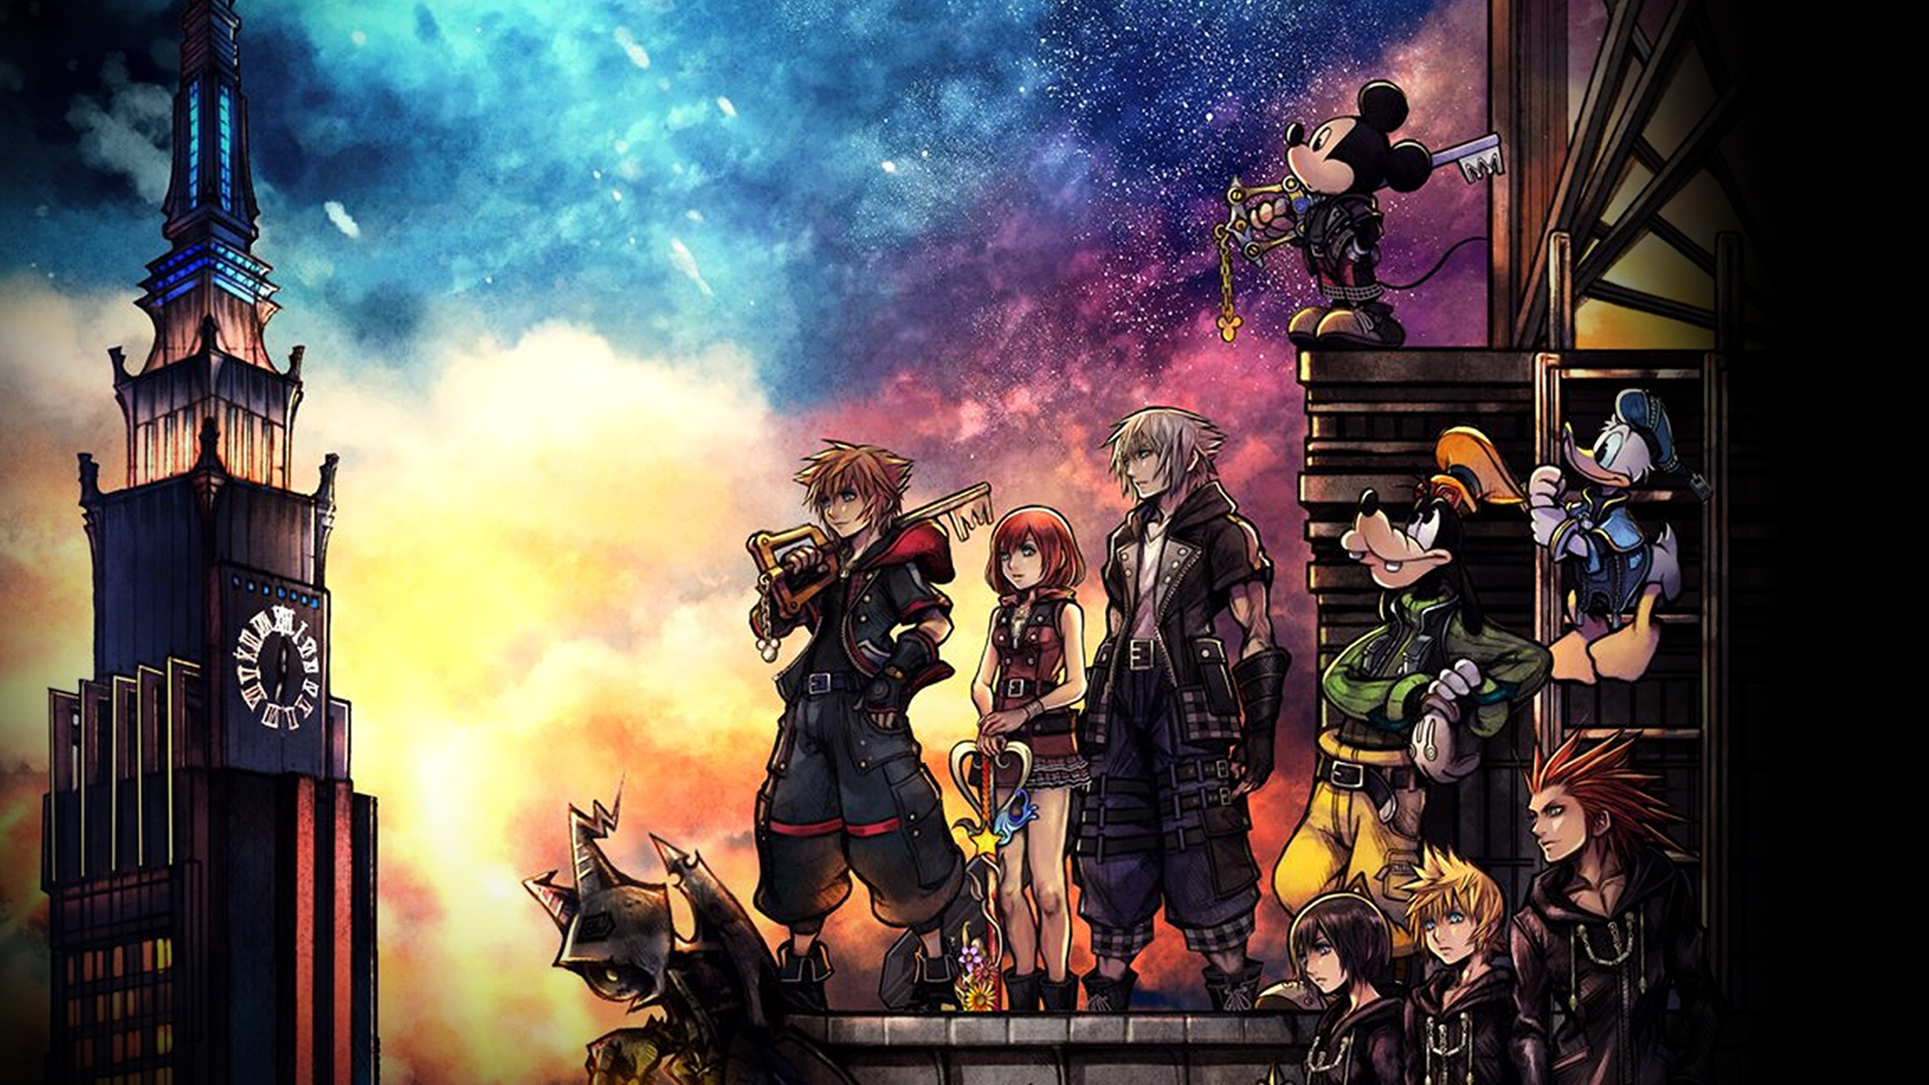 Kingdom Hearts Iii Wallpaper Cover Art Wallpaper Cat With Monocle